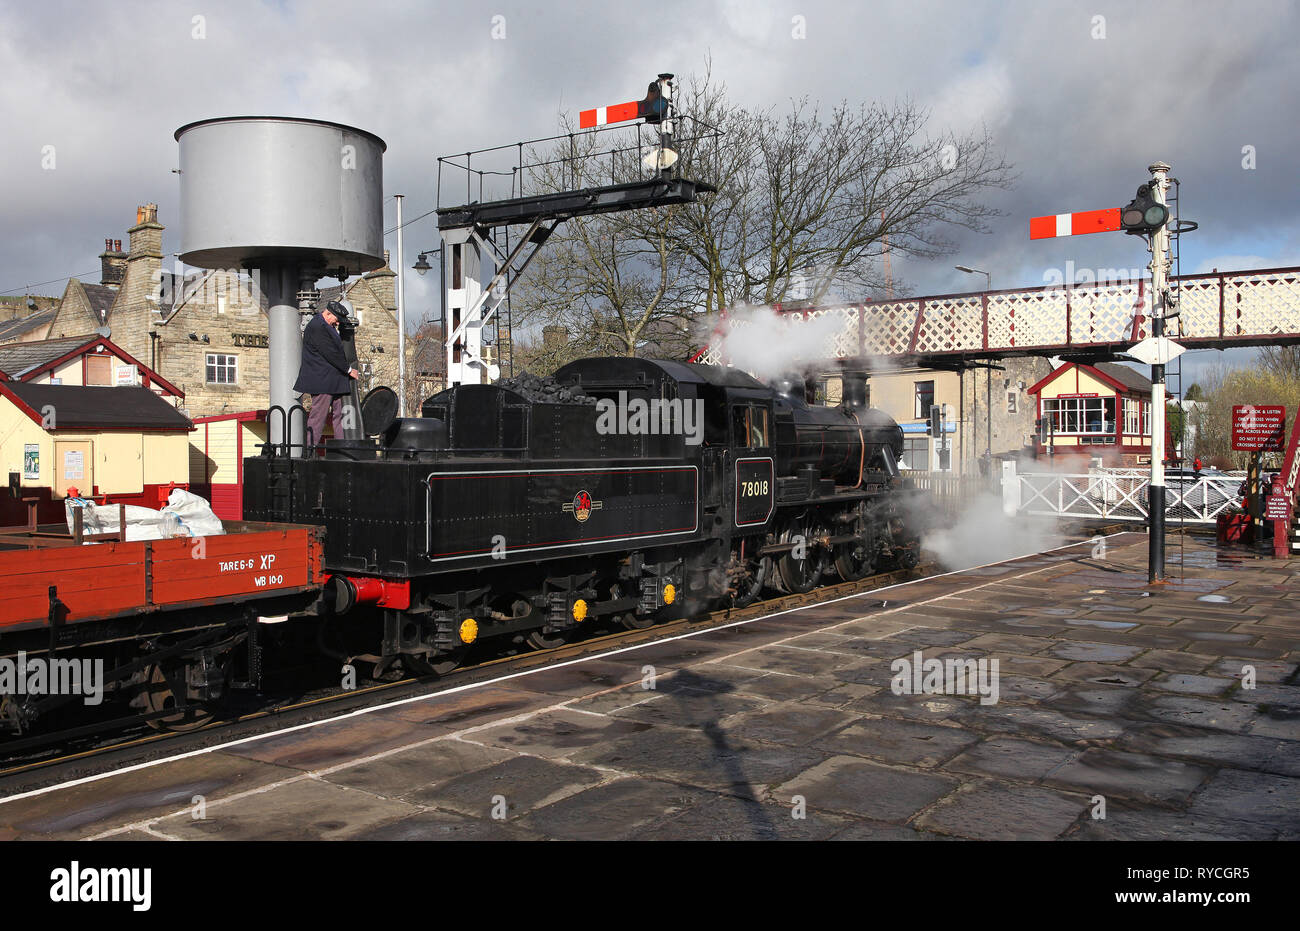 Standard 2 78018 waters at Ramsbottom station. Stock Photo